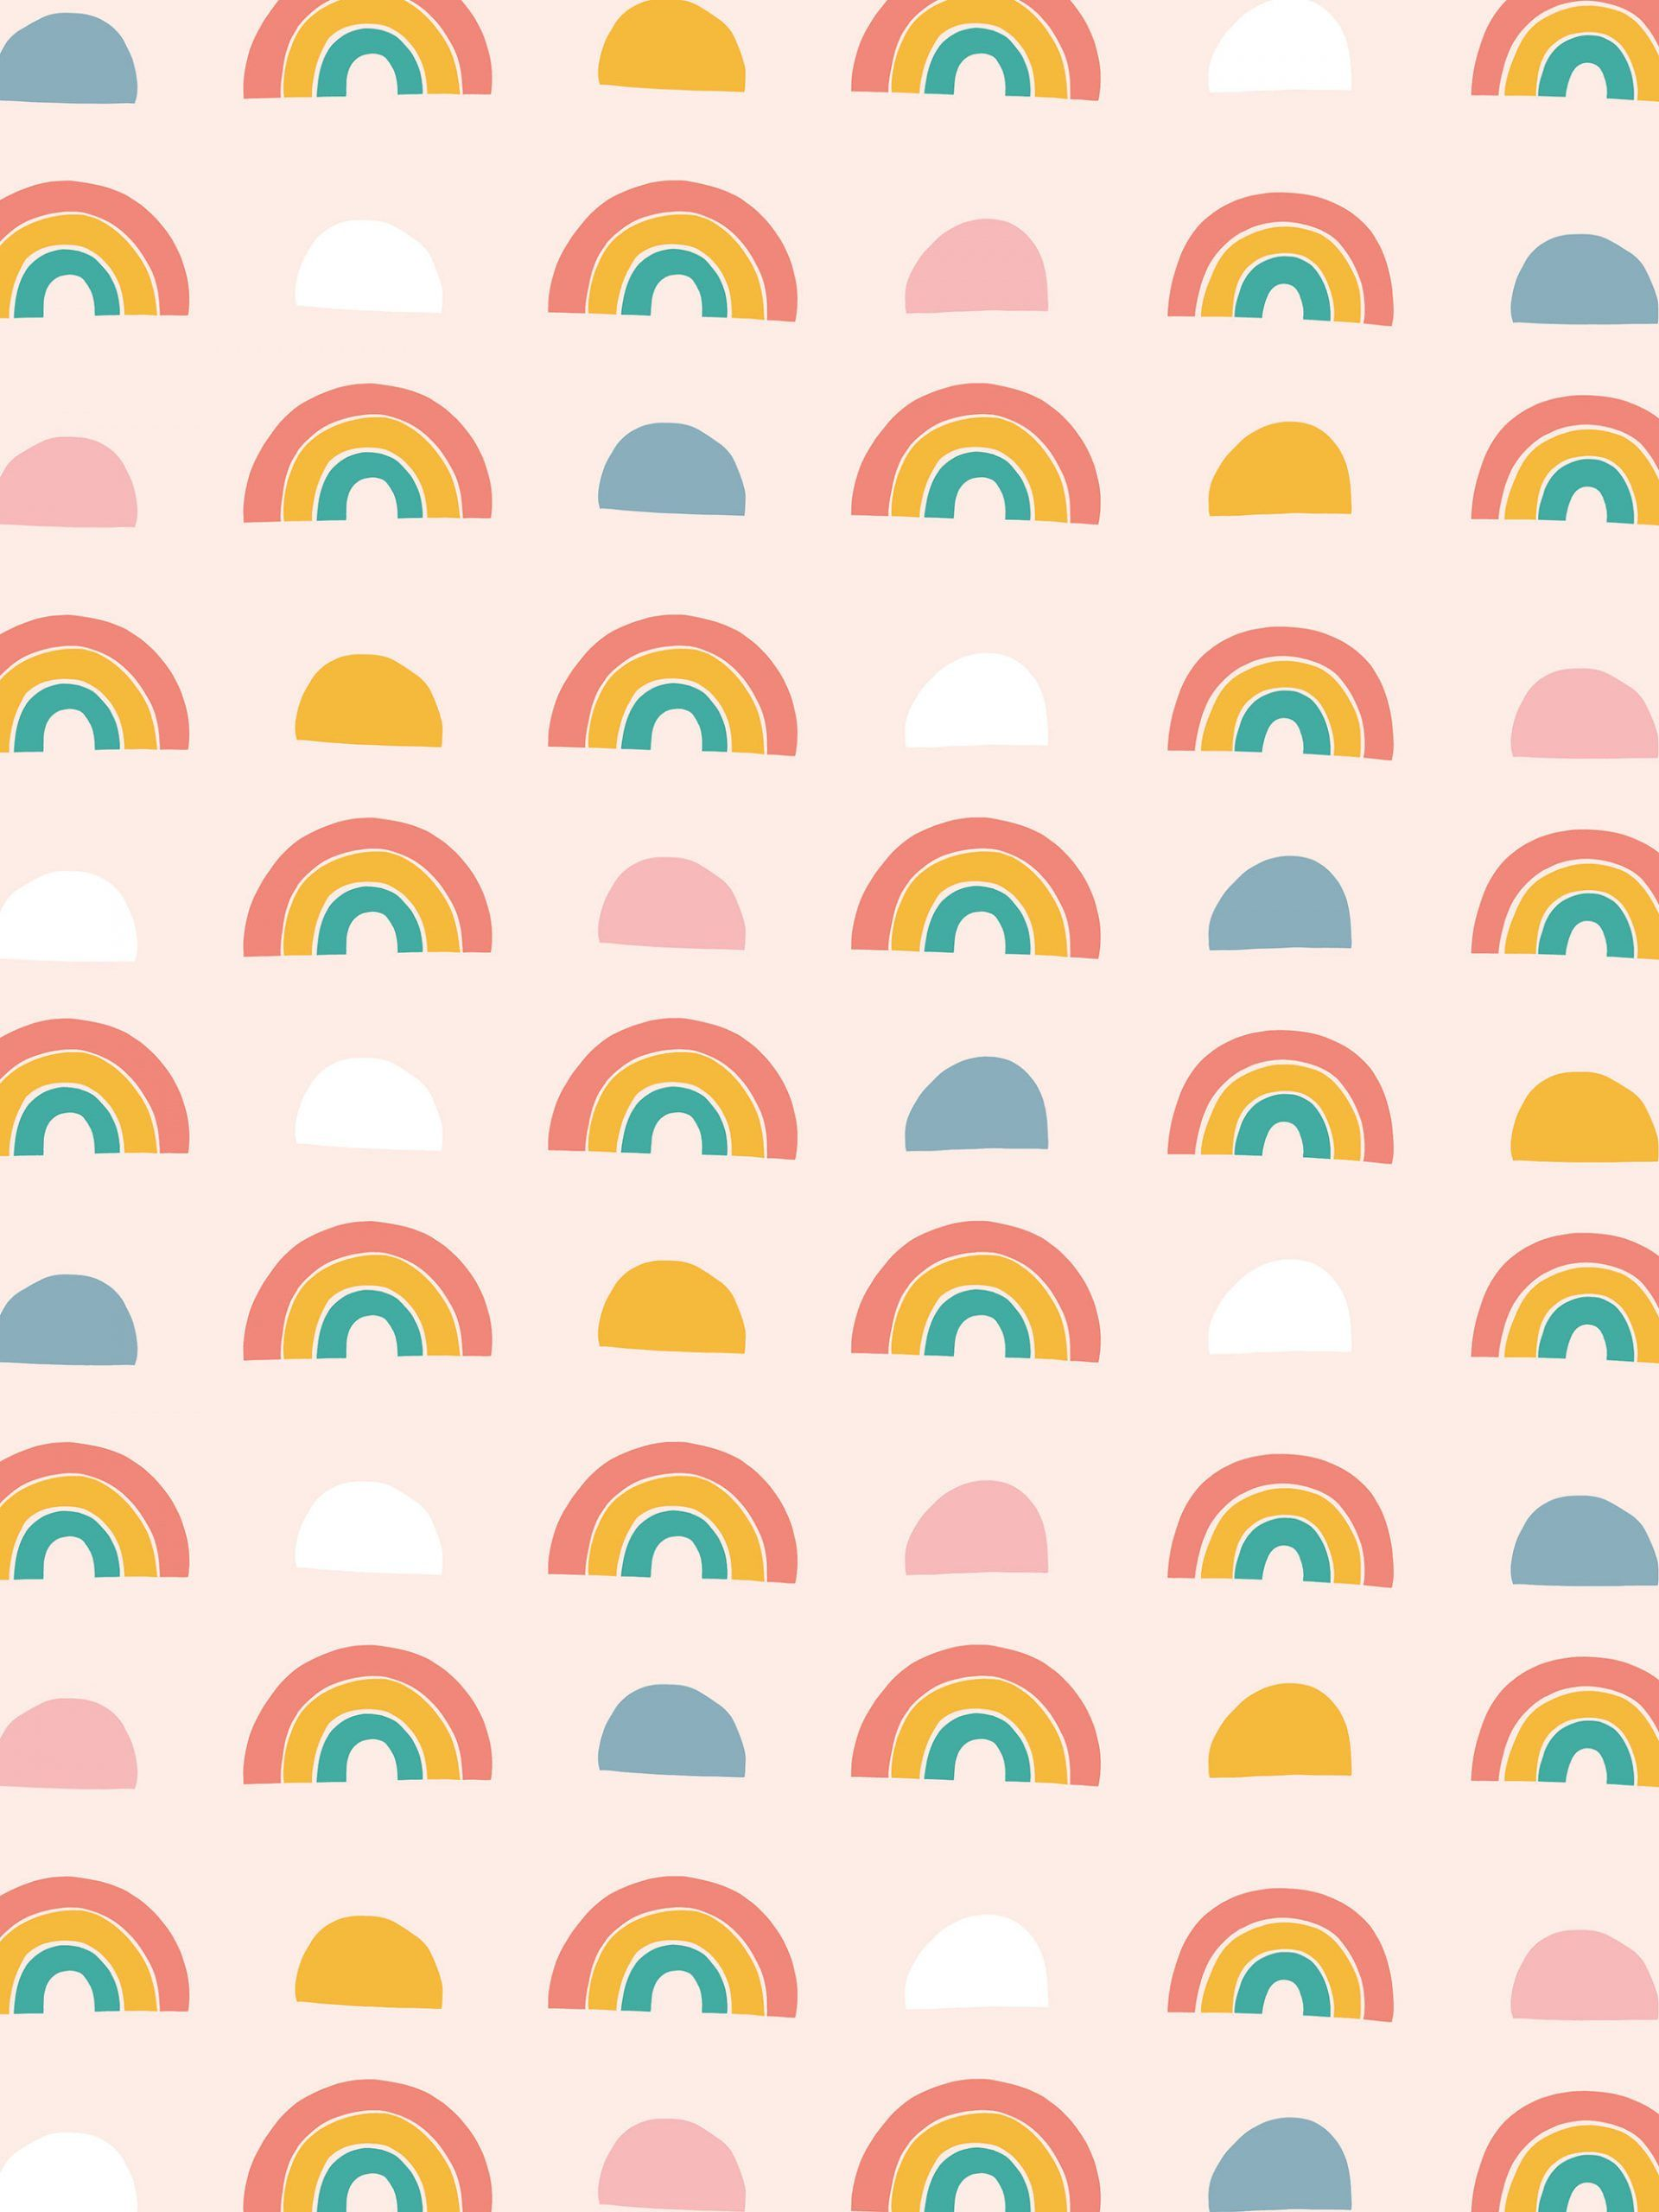 Pin By Karine Leite On Cute Wallpapers Rainbow Wallpaper Backgrounds Rainbow Wallpaper Iphone Tablet Wallpaper